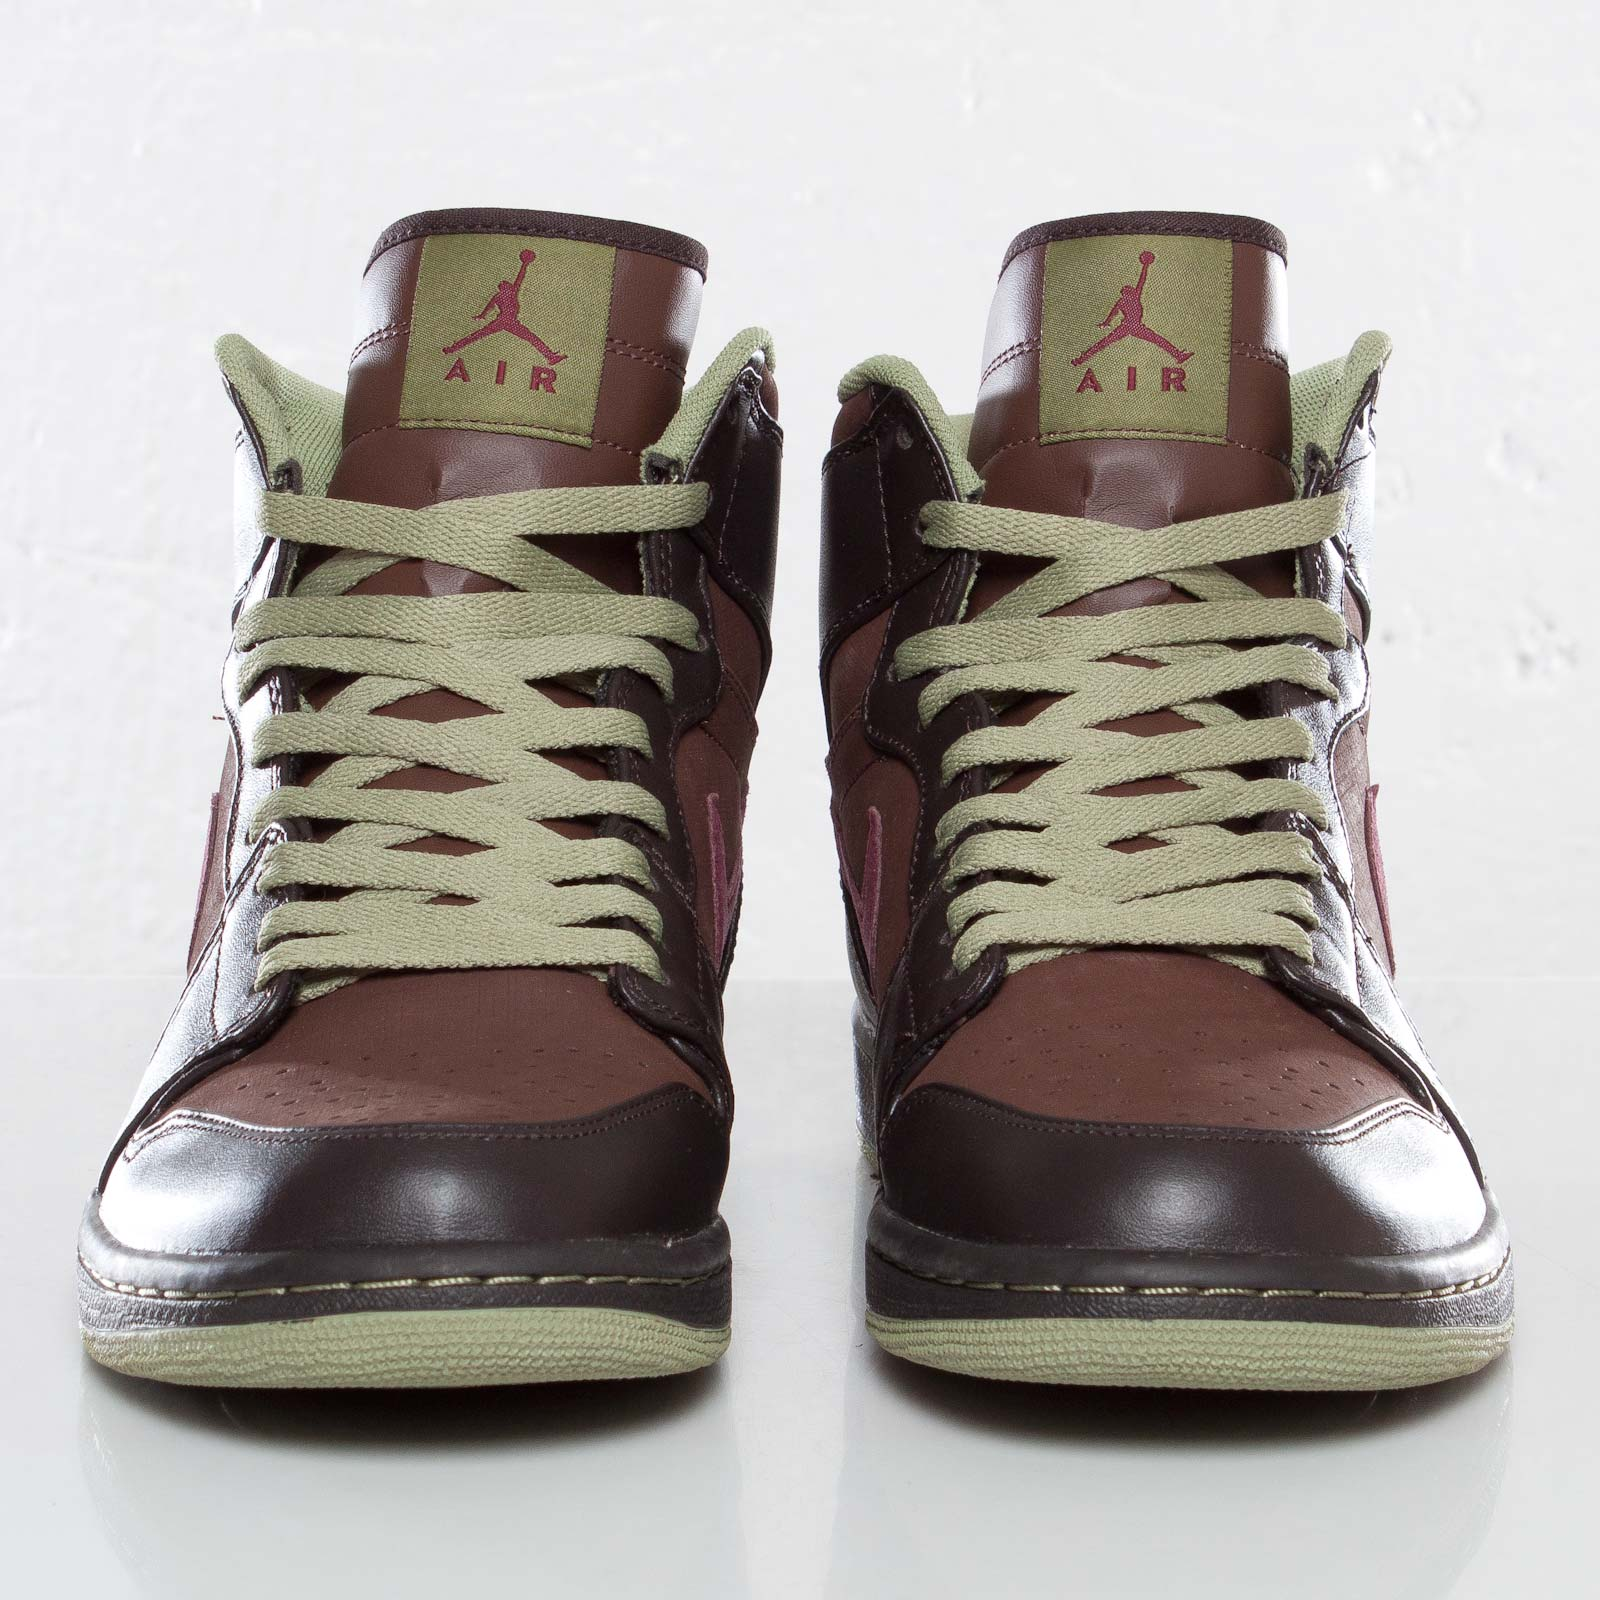 5fd1f14baa6aac Jordan Brand Air Jordan 1 Retro High - 332550-201 - Sneakersnstuff ...